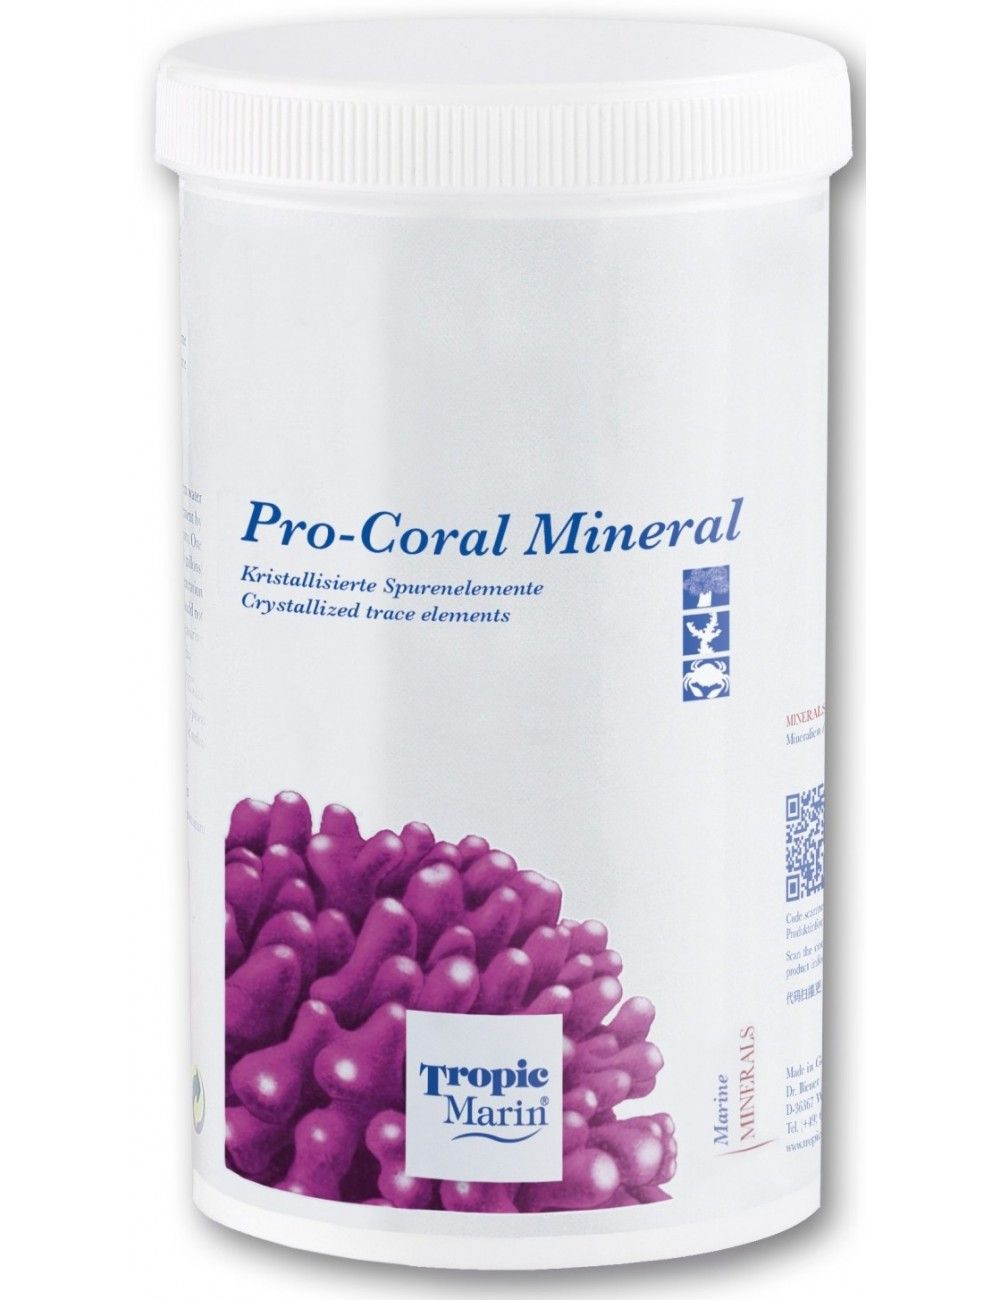 TROPIC MARIN - Pro-Coral Mineral - 500 g